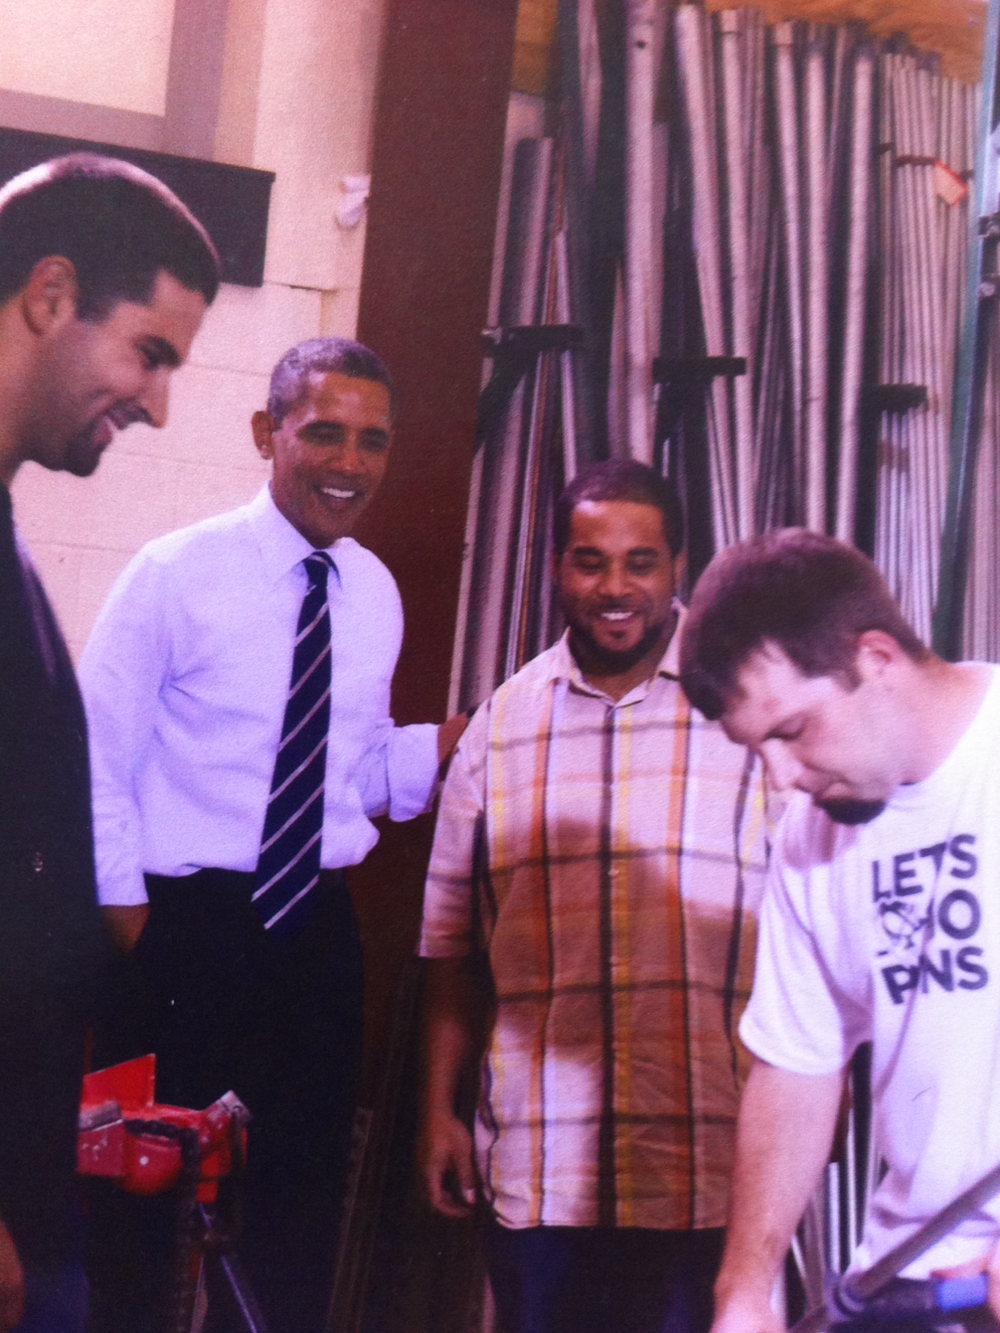 My nephew with Obama